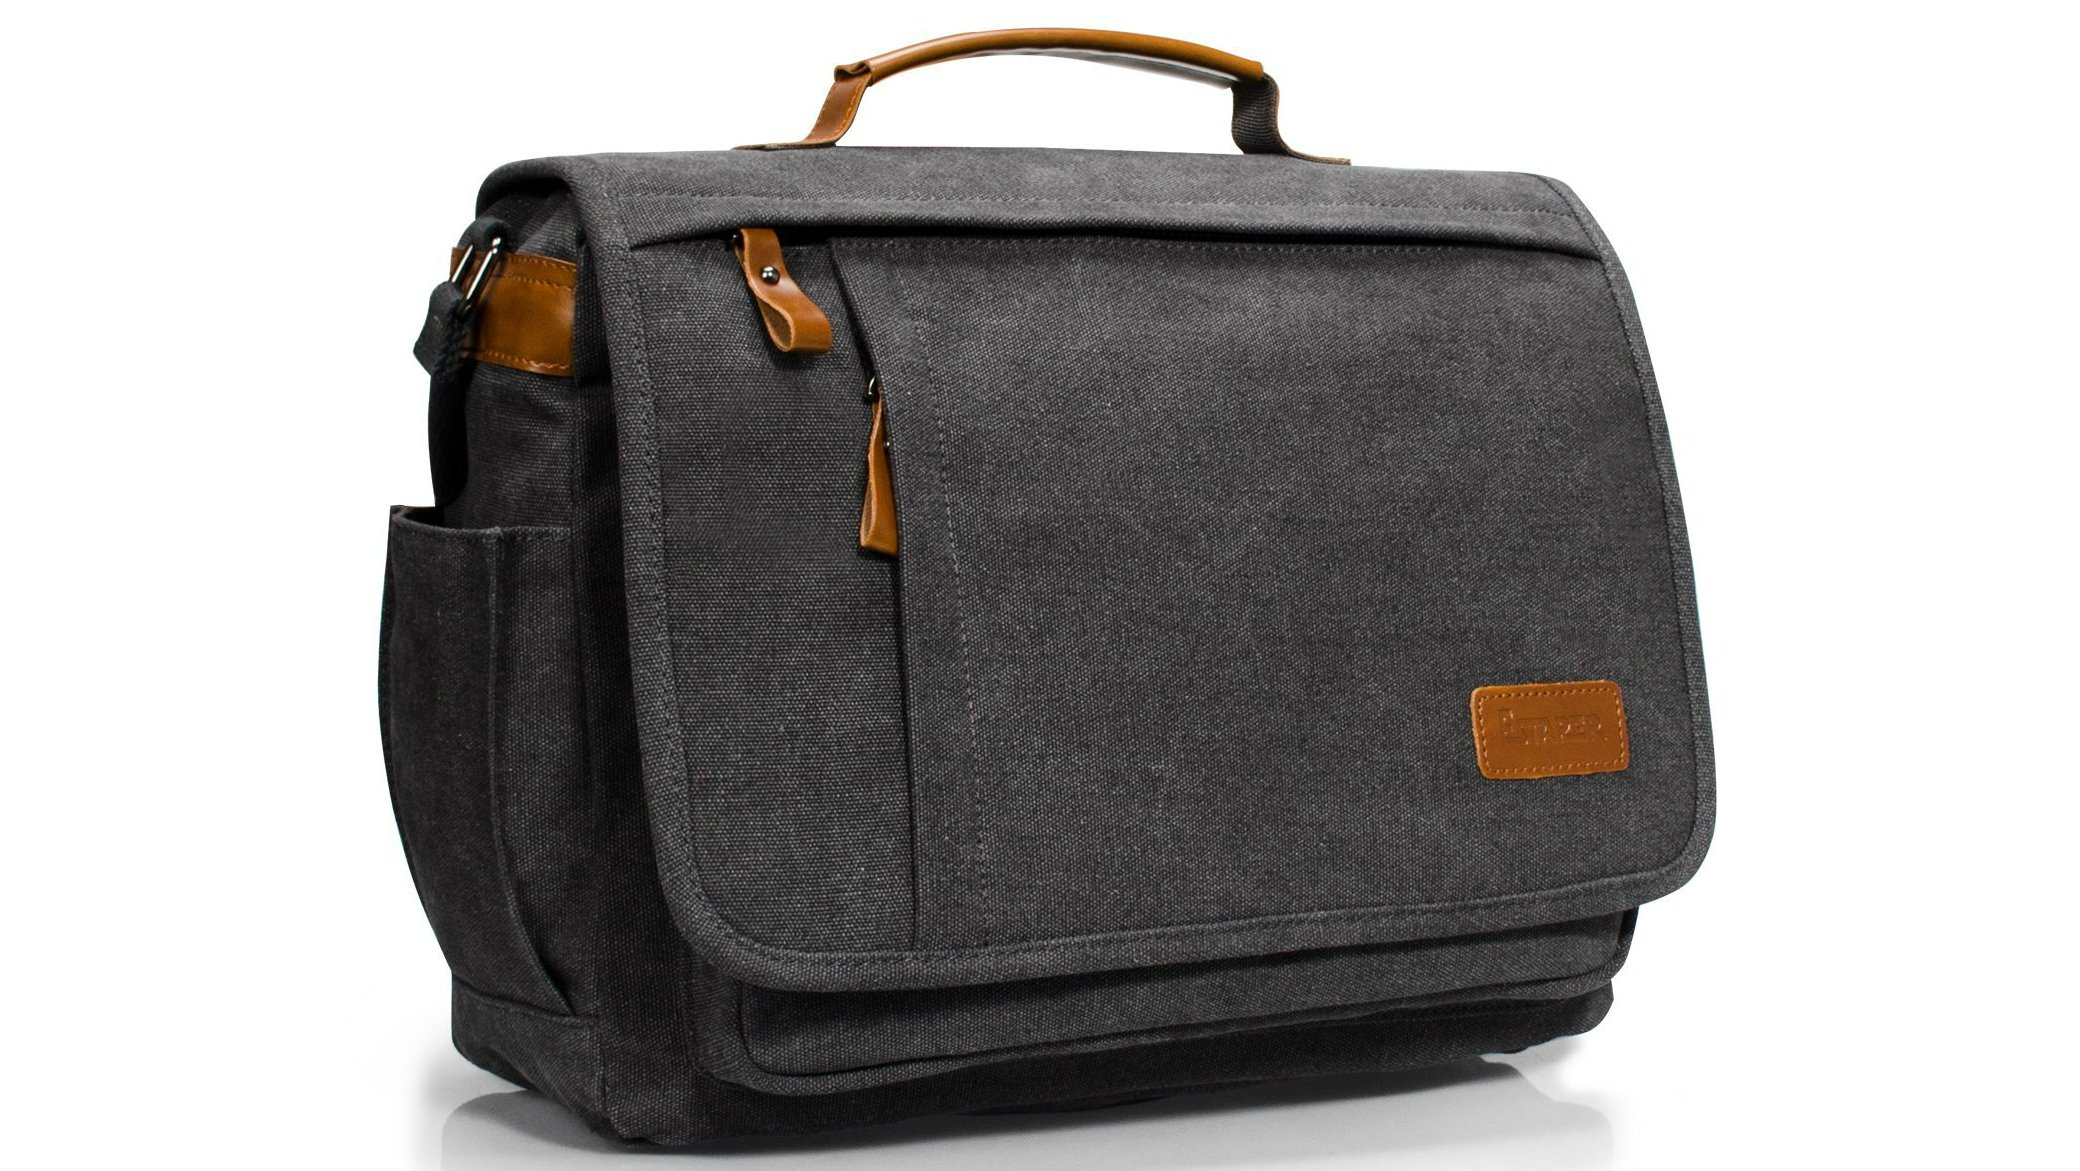 Looking for something with a little more style than a basic laptop bag 3bac20f9c